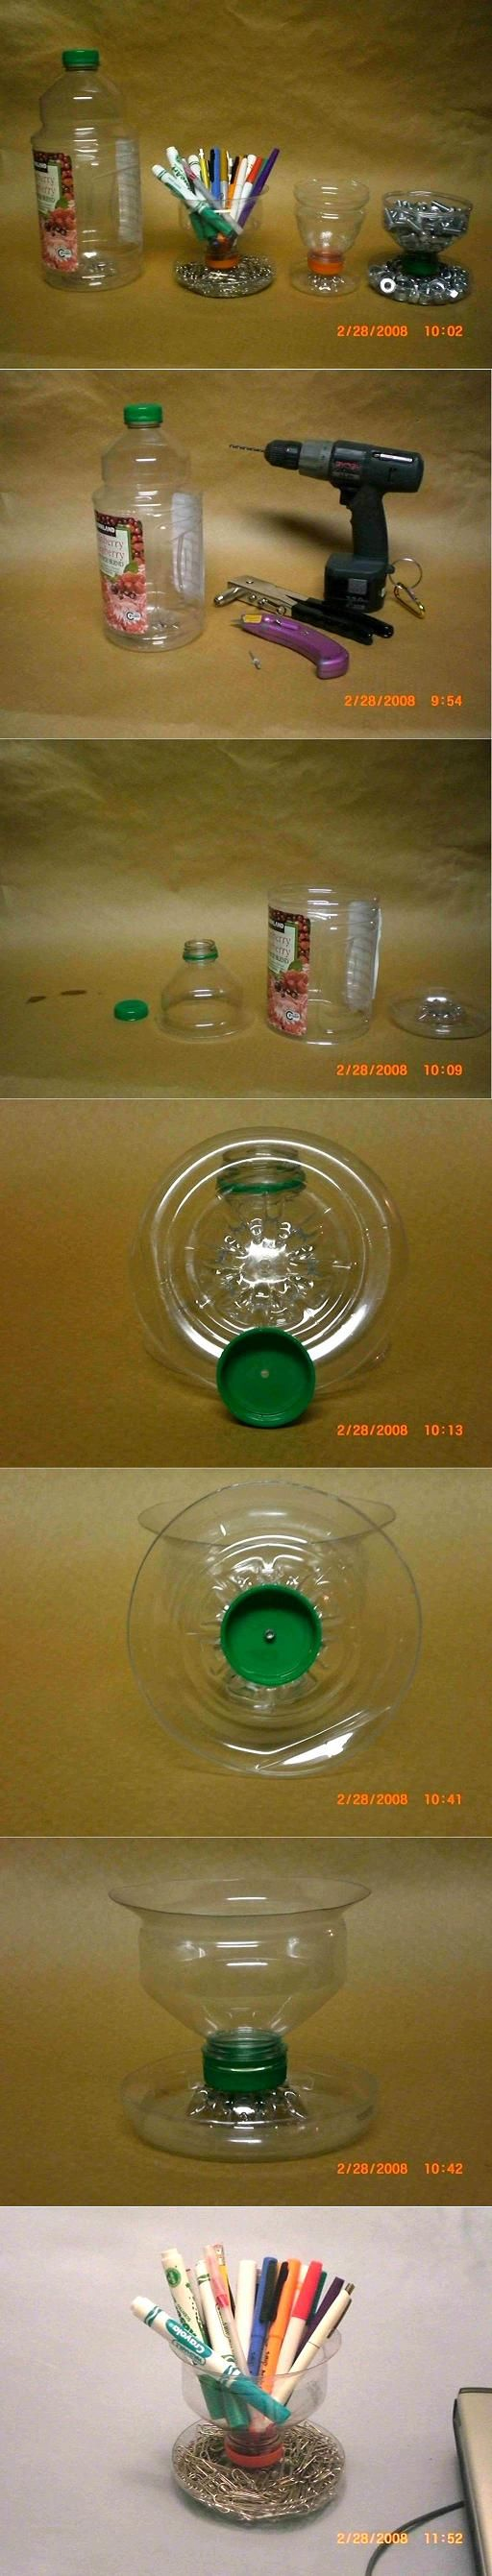 My DIY Projects Recycling Plastic Bottle Pencil